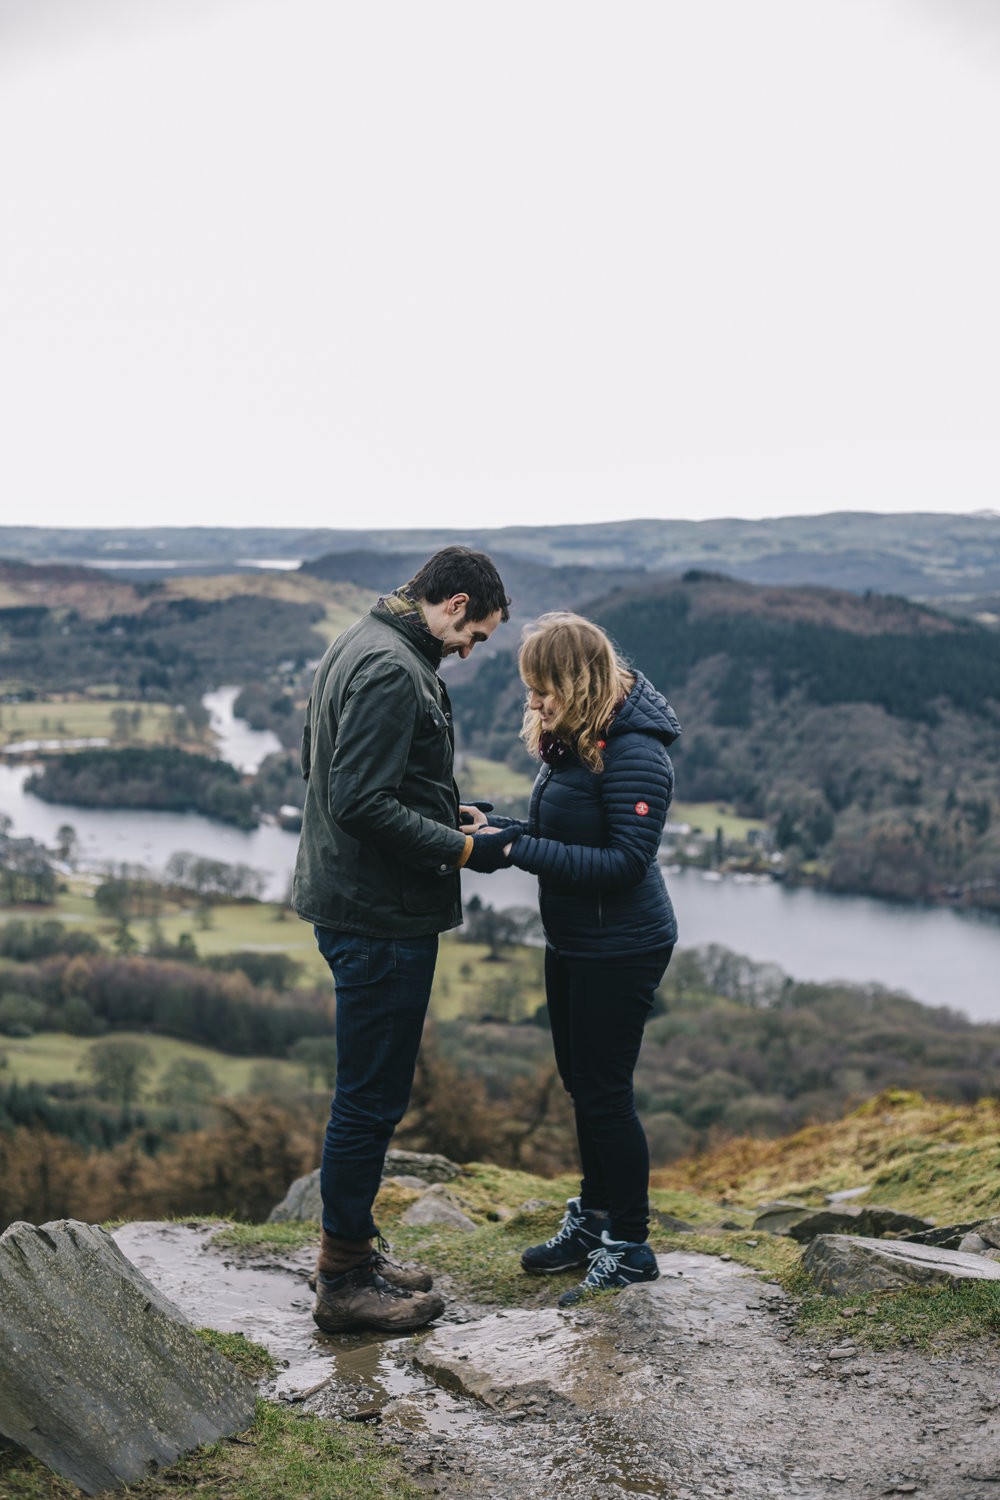 Alex + Matt - Windermere Engagement Photography - Claire Basiuk - 03.jpg